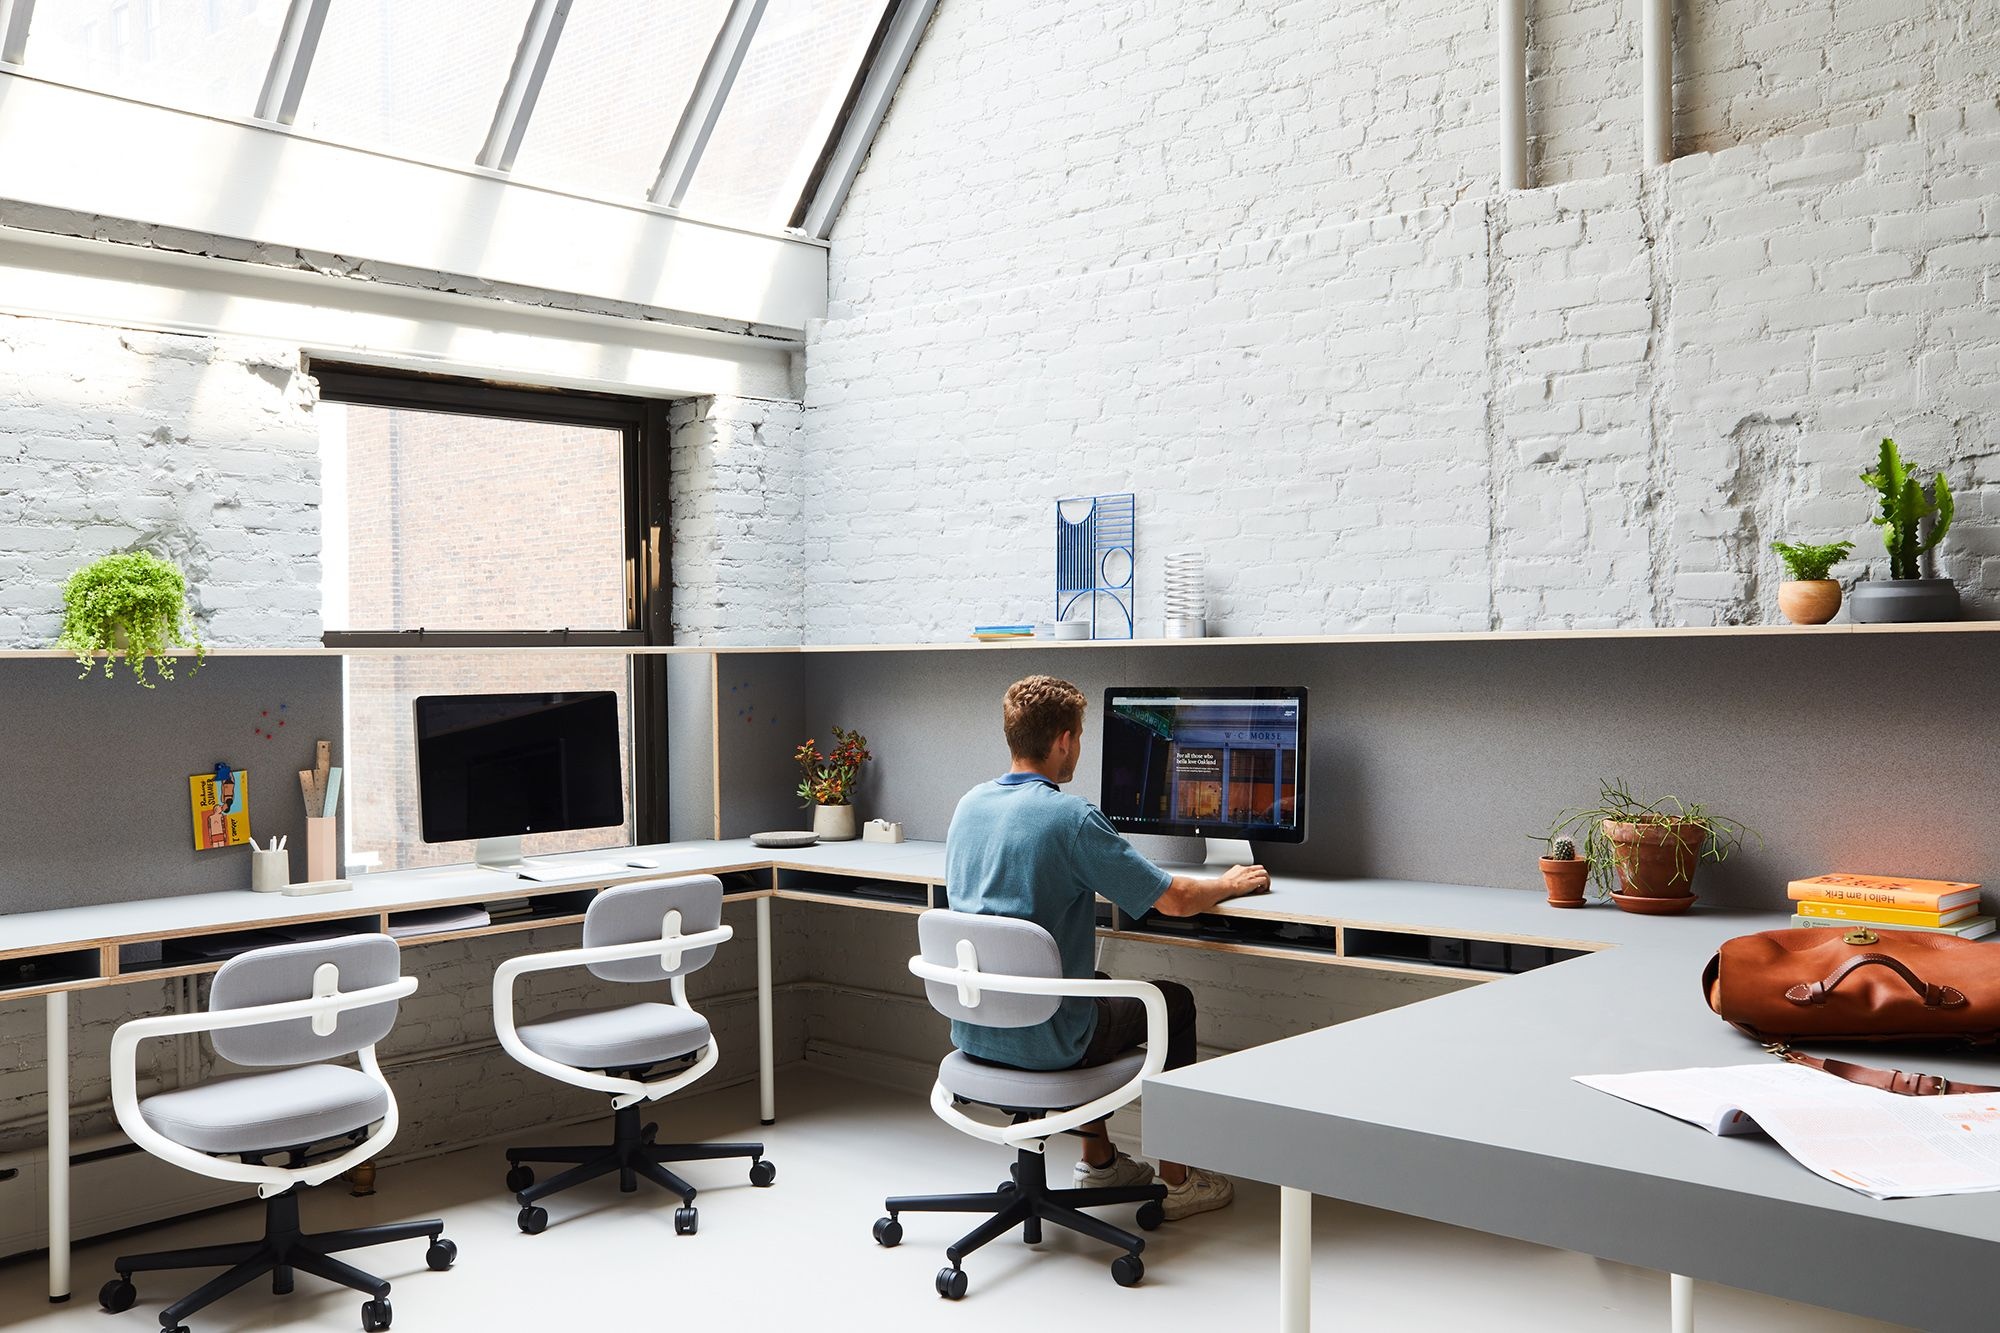 Objective Subject Offices is a minimal office space located in New